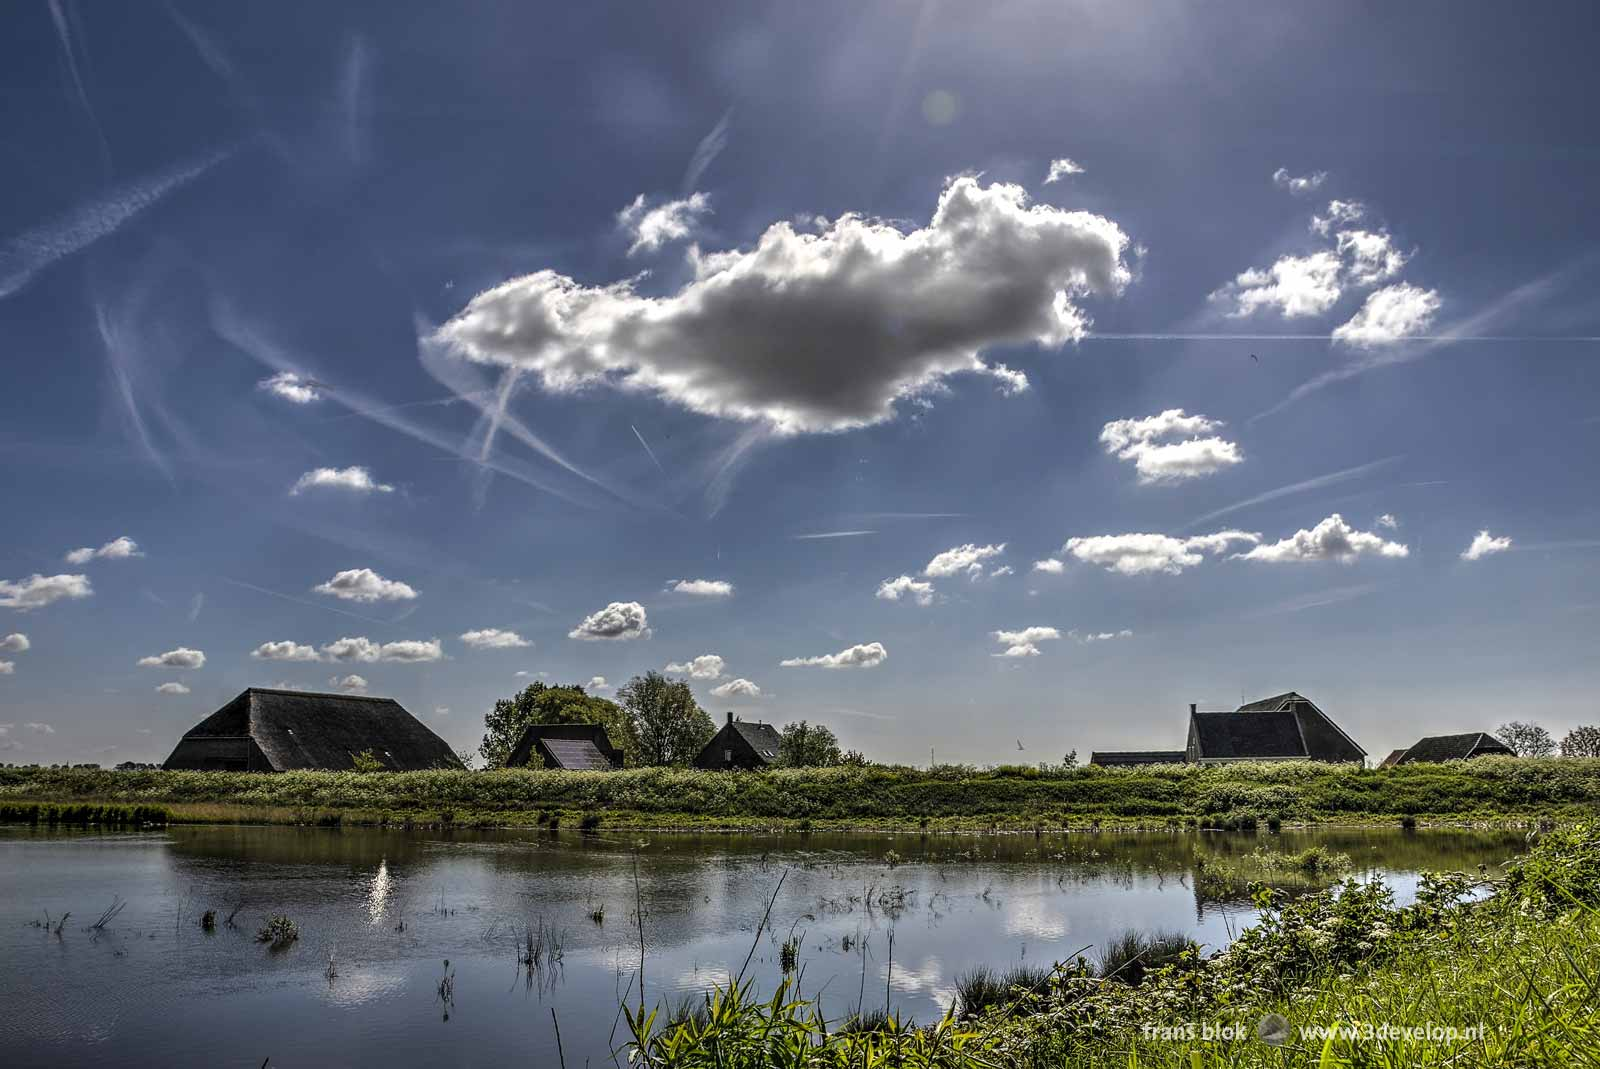 Blue sky with small clouds and contrails above farms on the nature island of Tiengemeten in The Netherlands